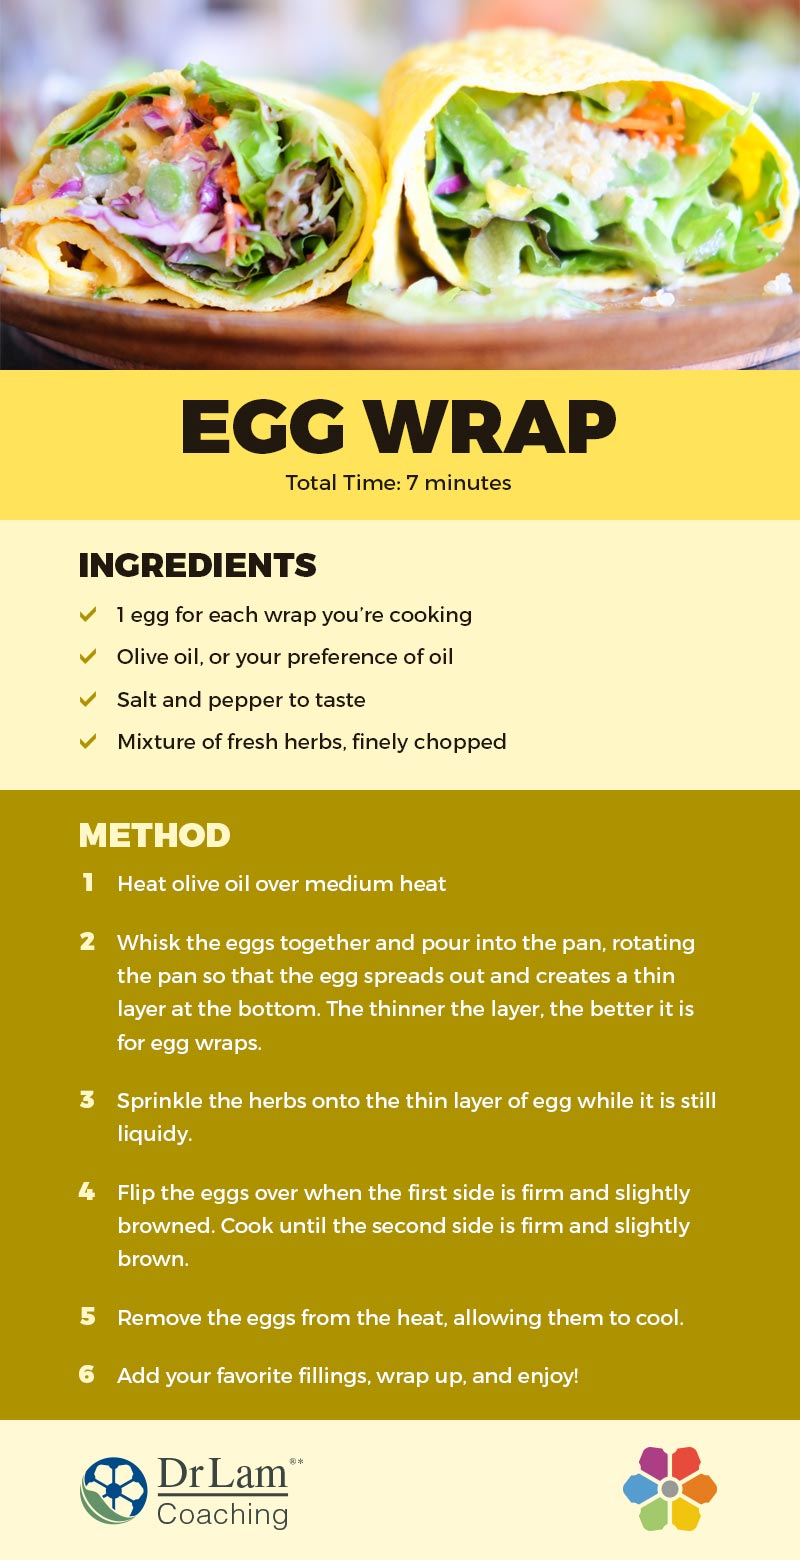 Try out this Egg Wrap Recipe